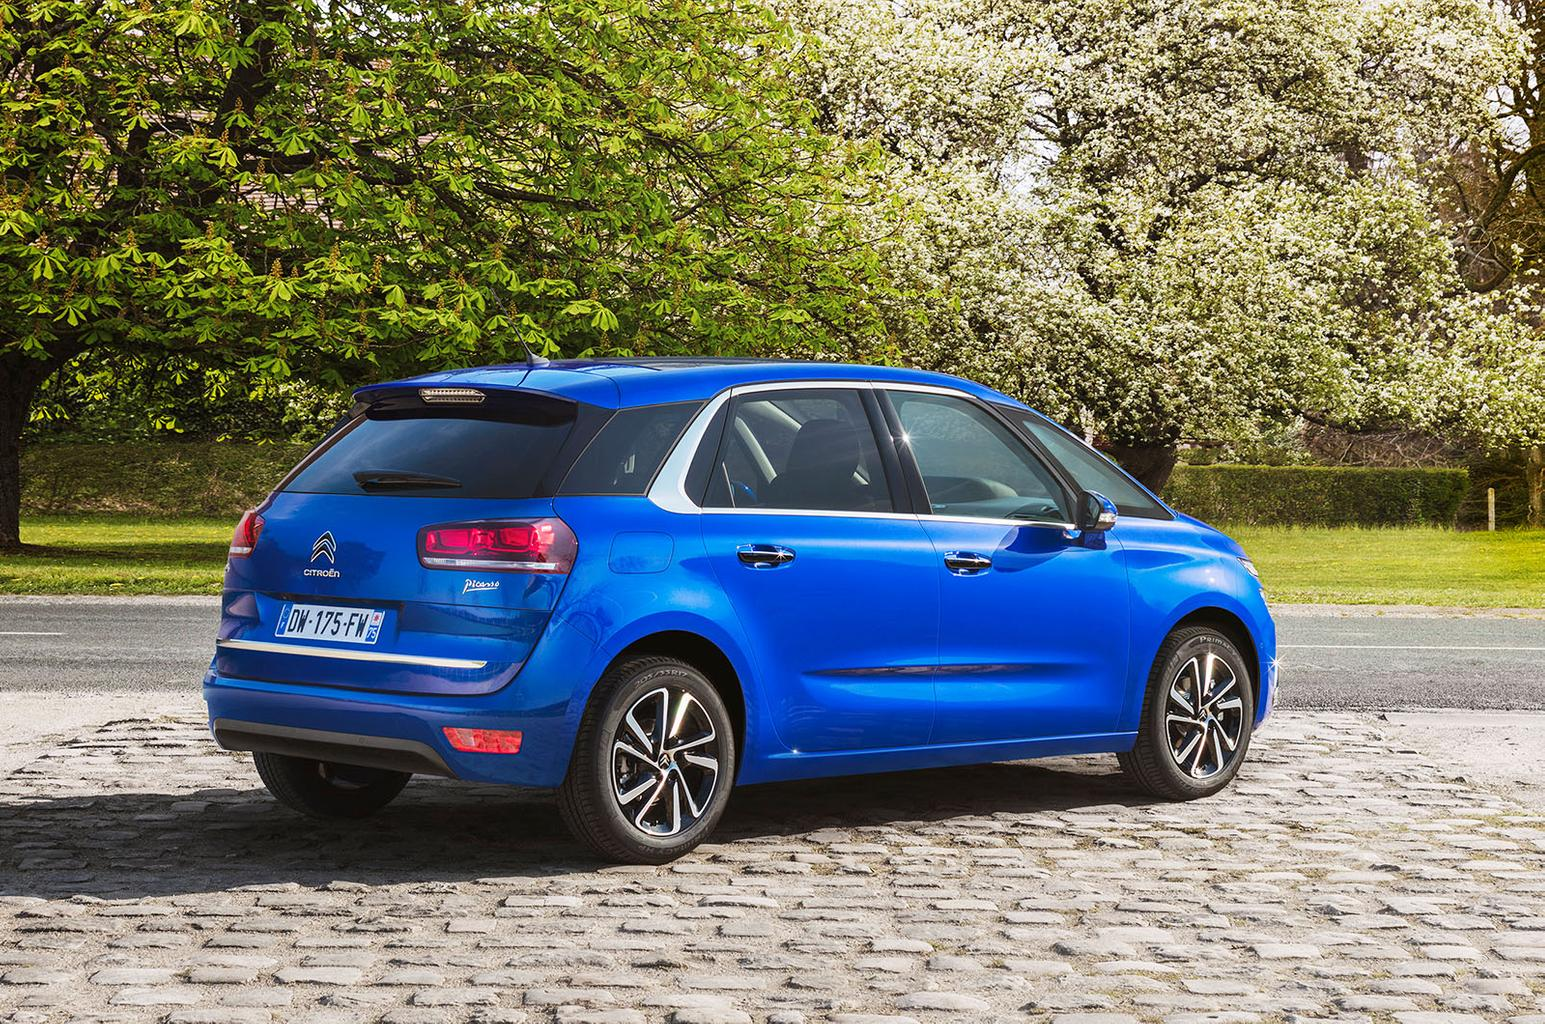 Facelifted Citroën C4 Picasso and Grand C4 Picasso to go on sale next month